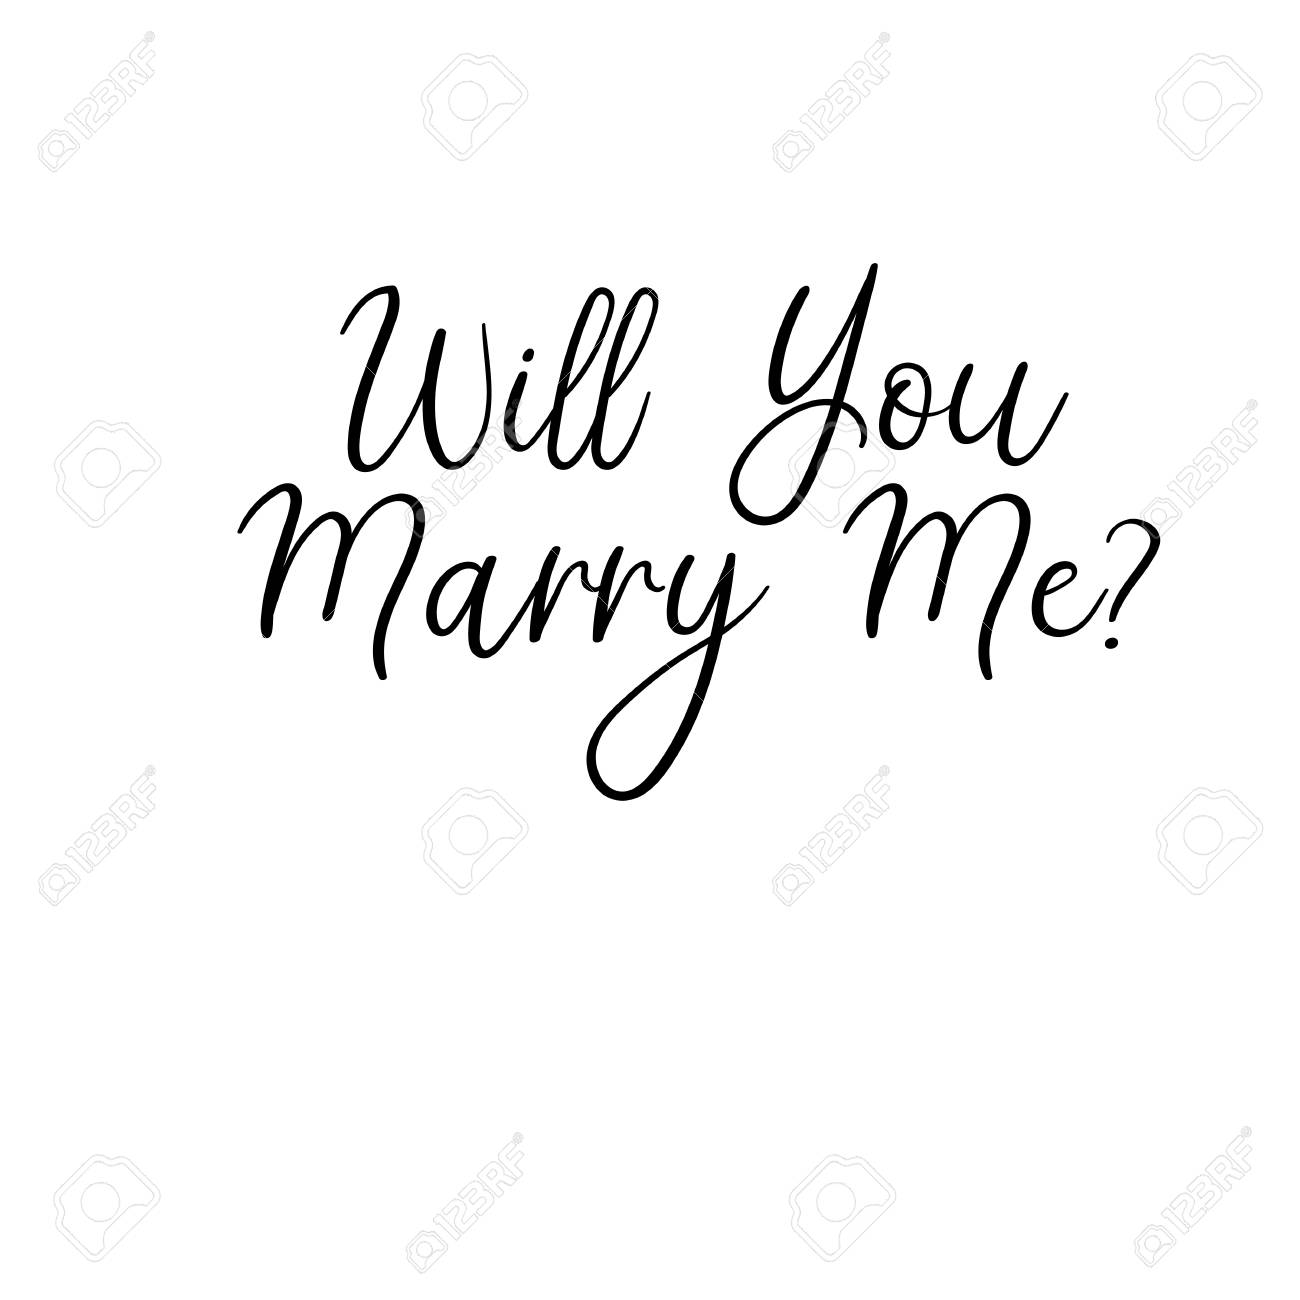 U marry sms will me Best marriage